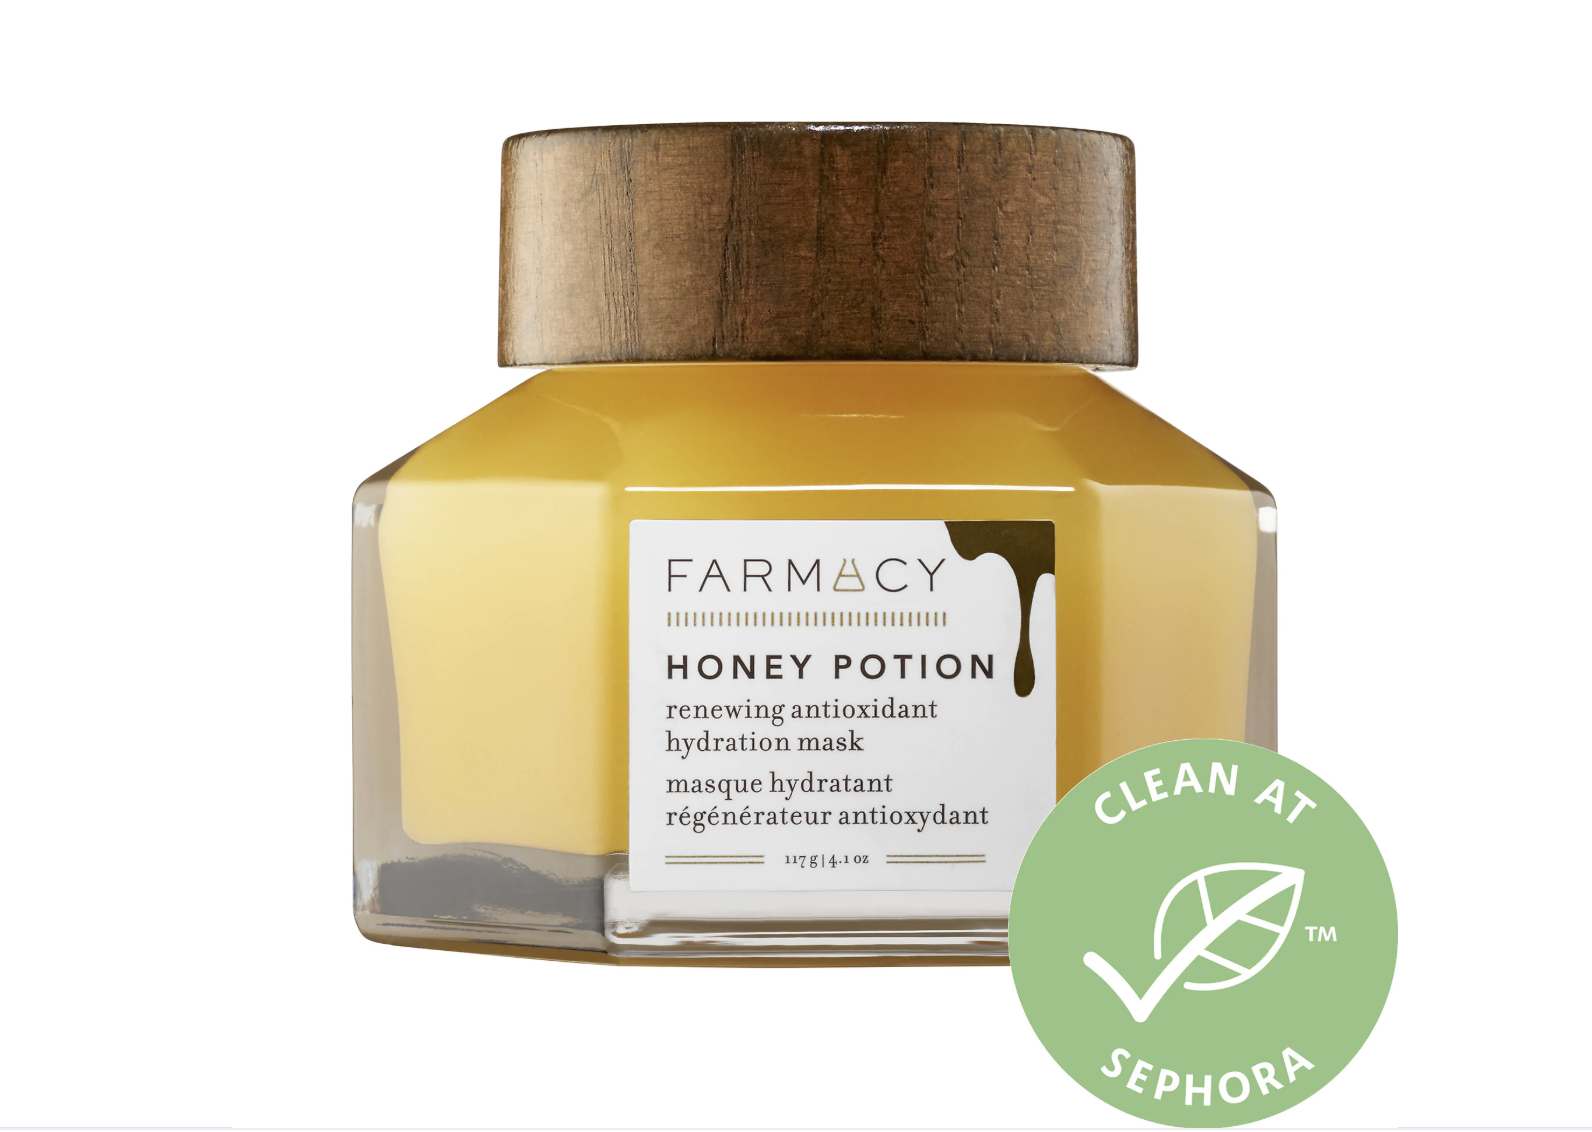 Our Similar Pick: Farmacy Honey Potion Renewing Antioxidant Hydration Mask